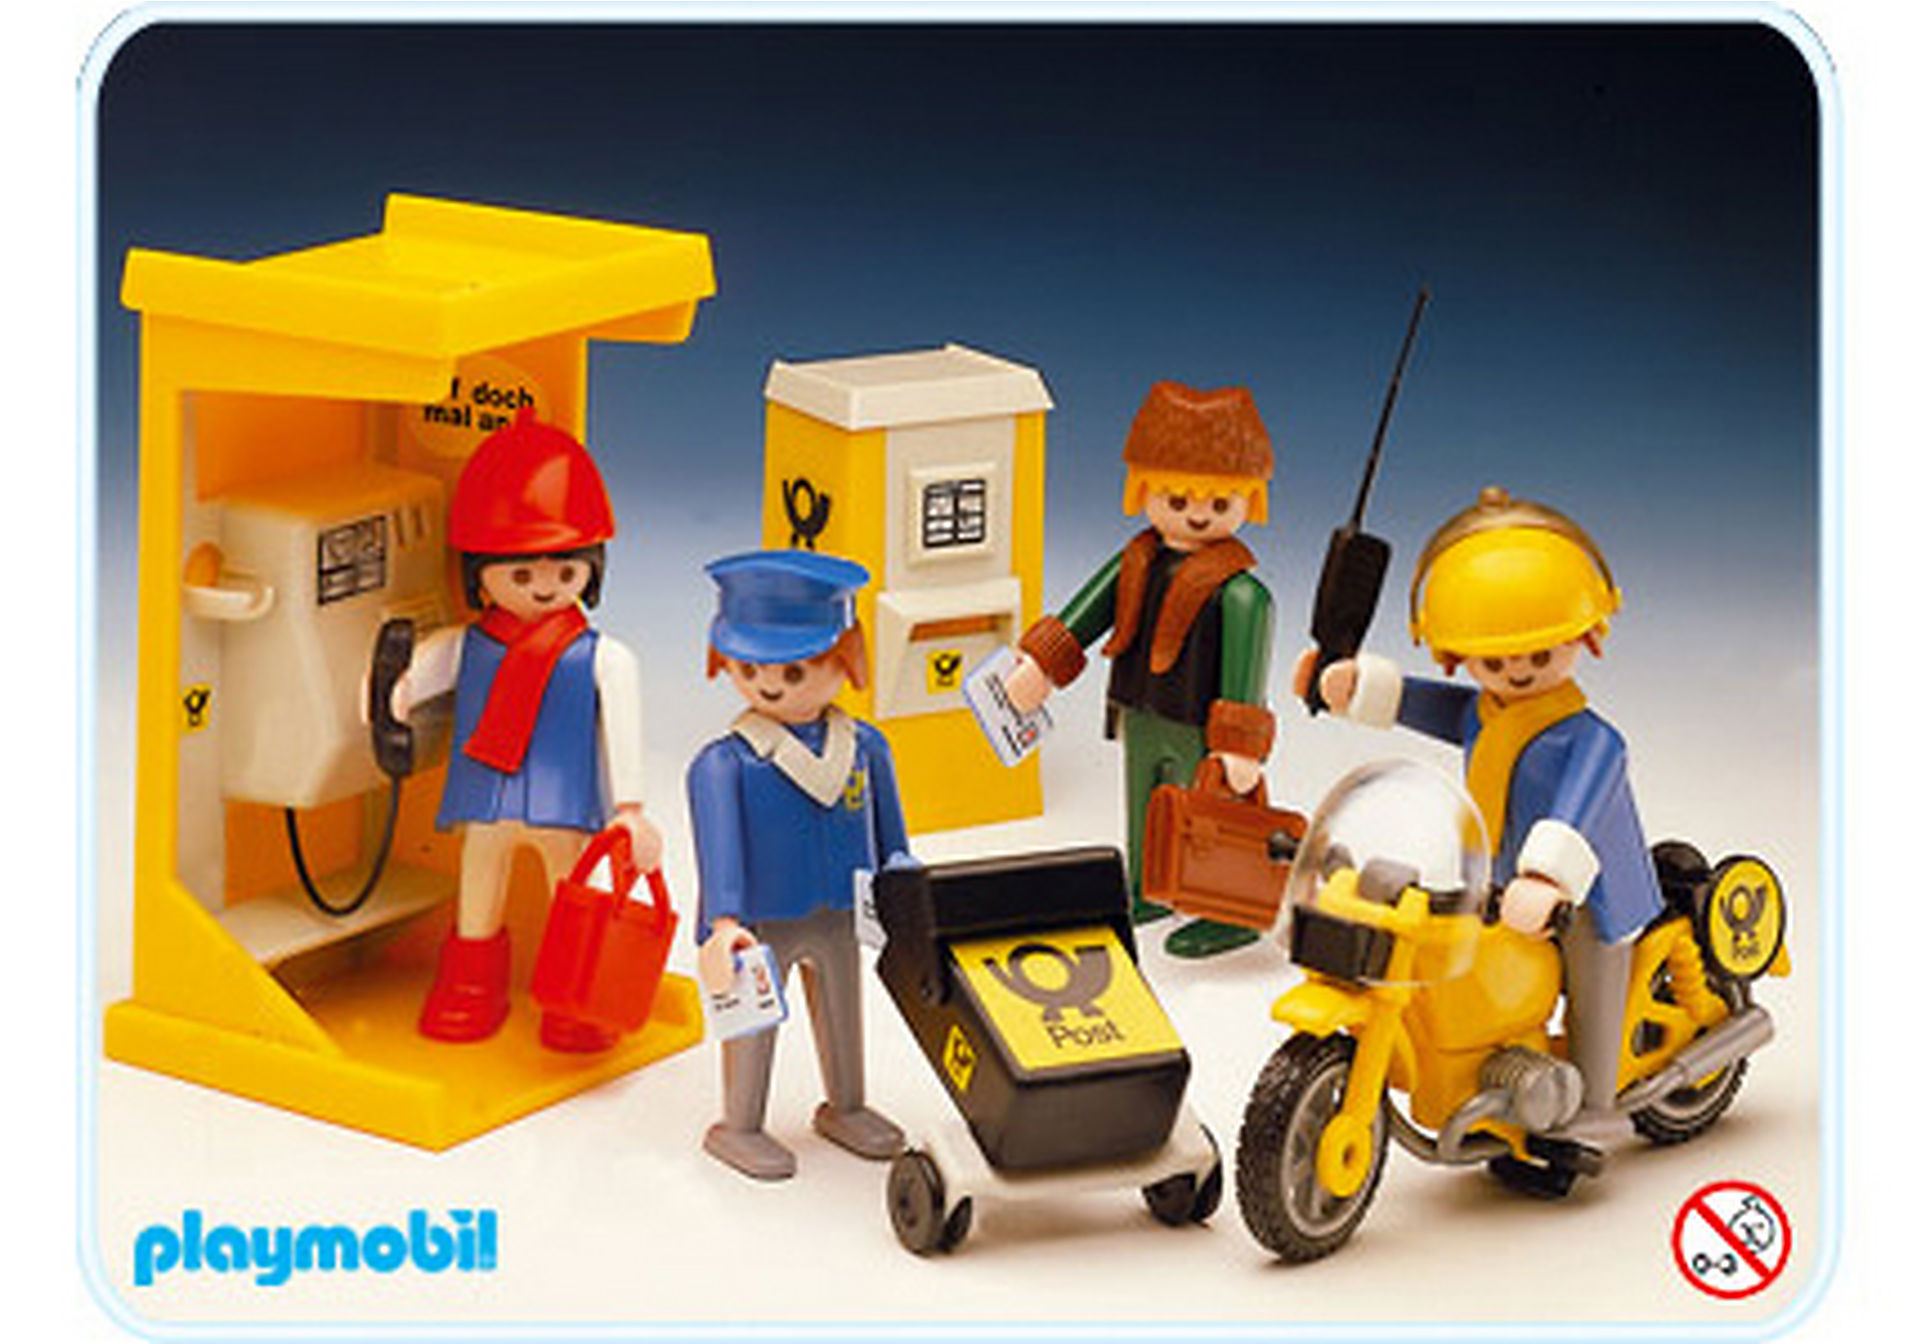 http://media.playmobil.com/i/playmobil/3231-B_product_detail/Post